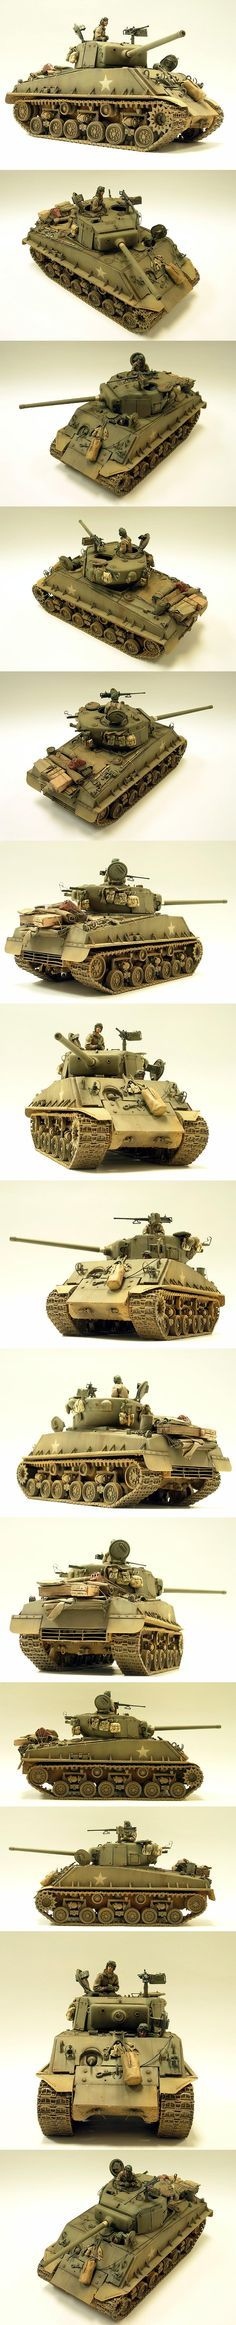 Sherman M4A3E8 (76mm) 1/35 Scale Model